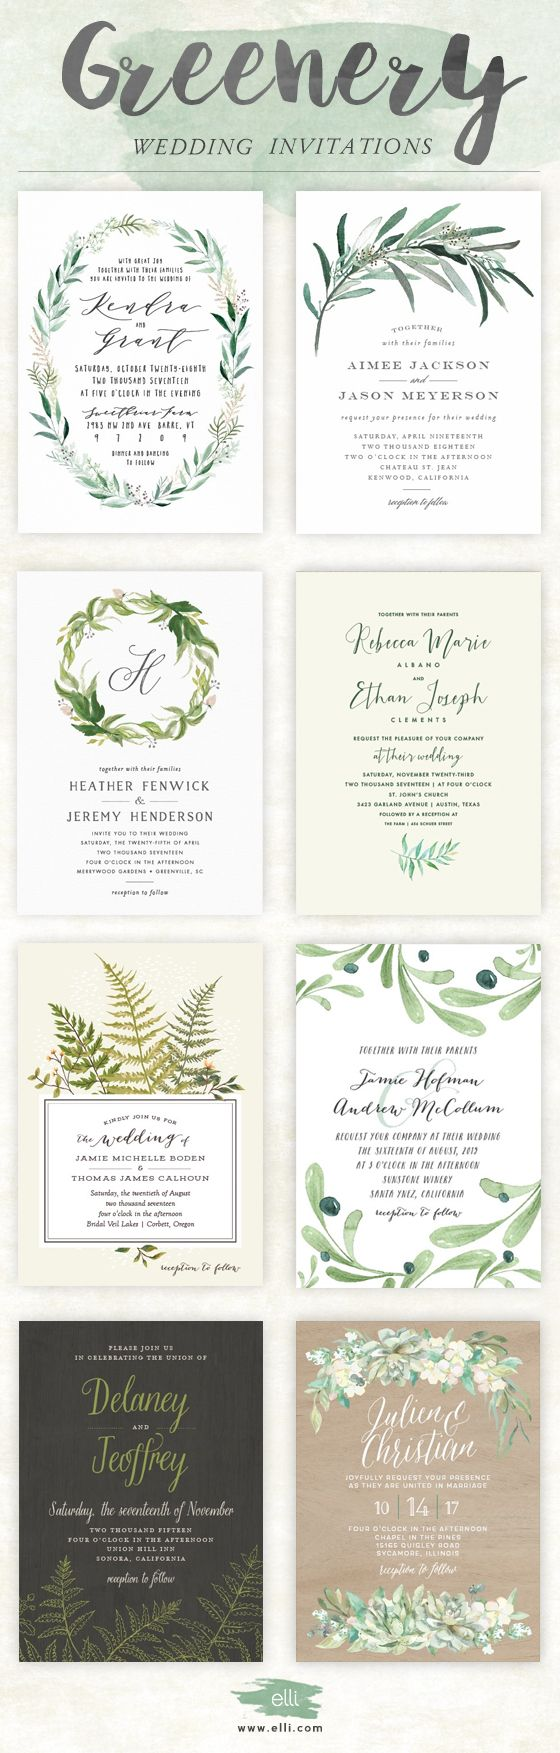 Trending for 2017 greenery wedding invitations from elli trending for 2017 greenery wedding invitations from elli wedding bells pinterest greenery weddings and wedding stopboris